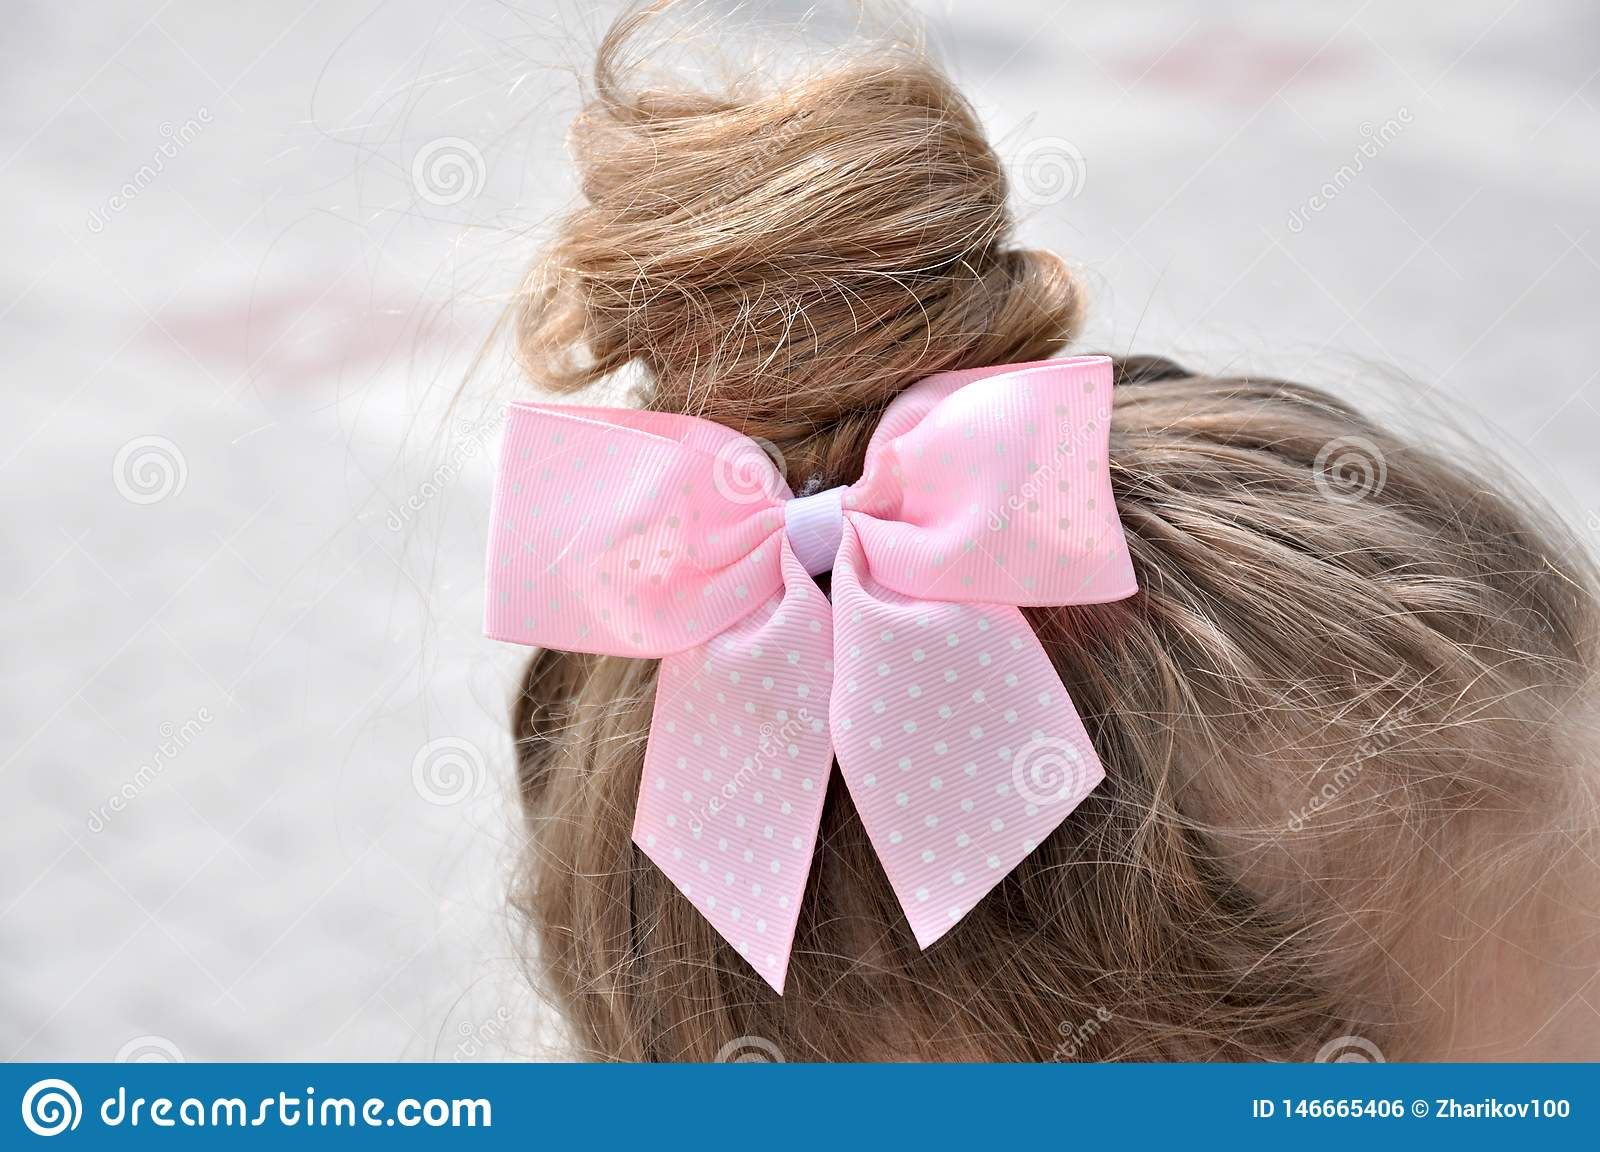 Hairstyle with a girl bow